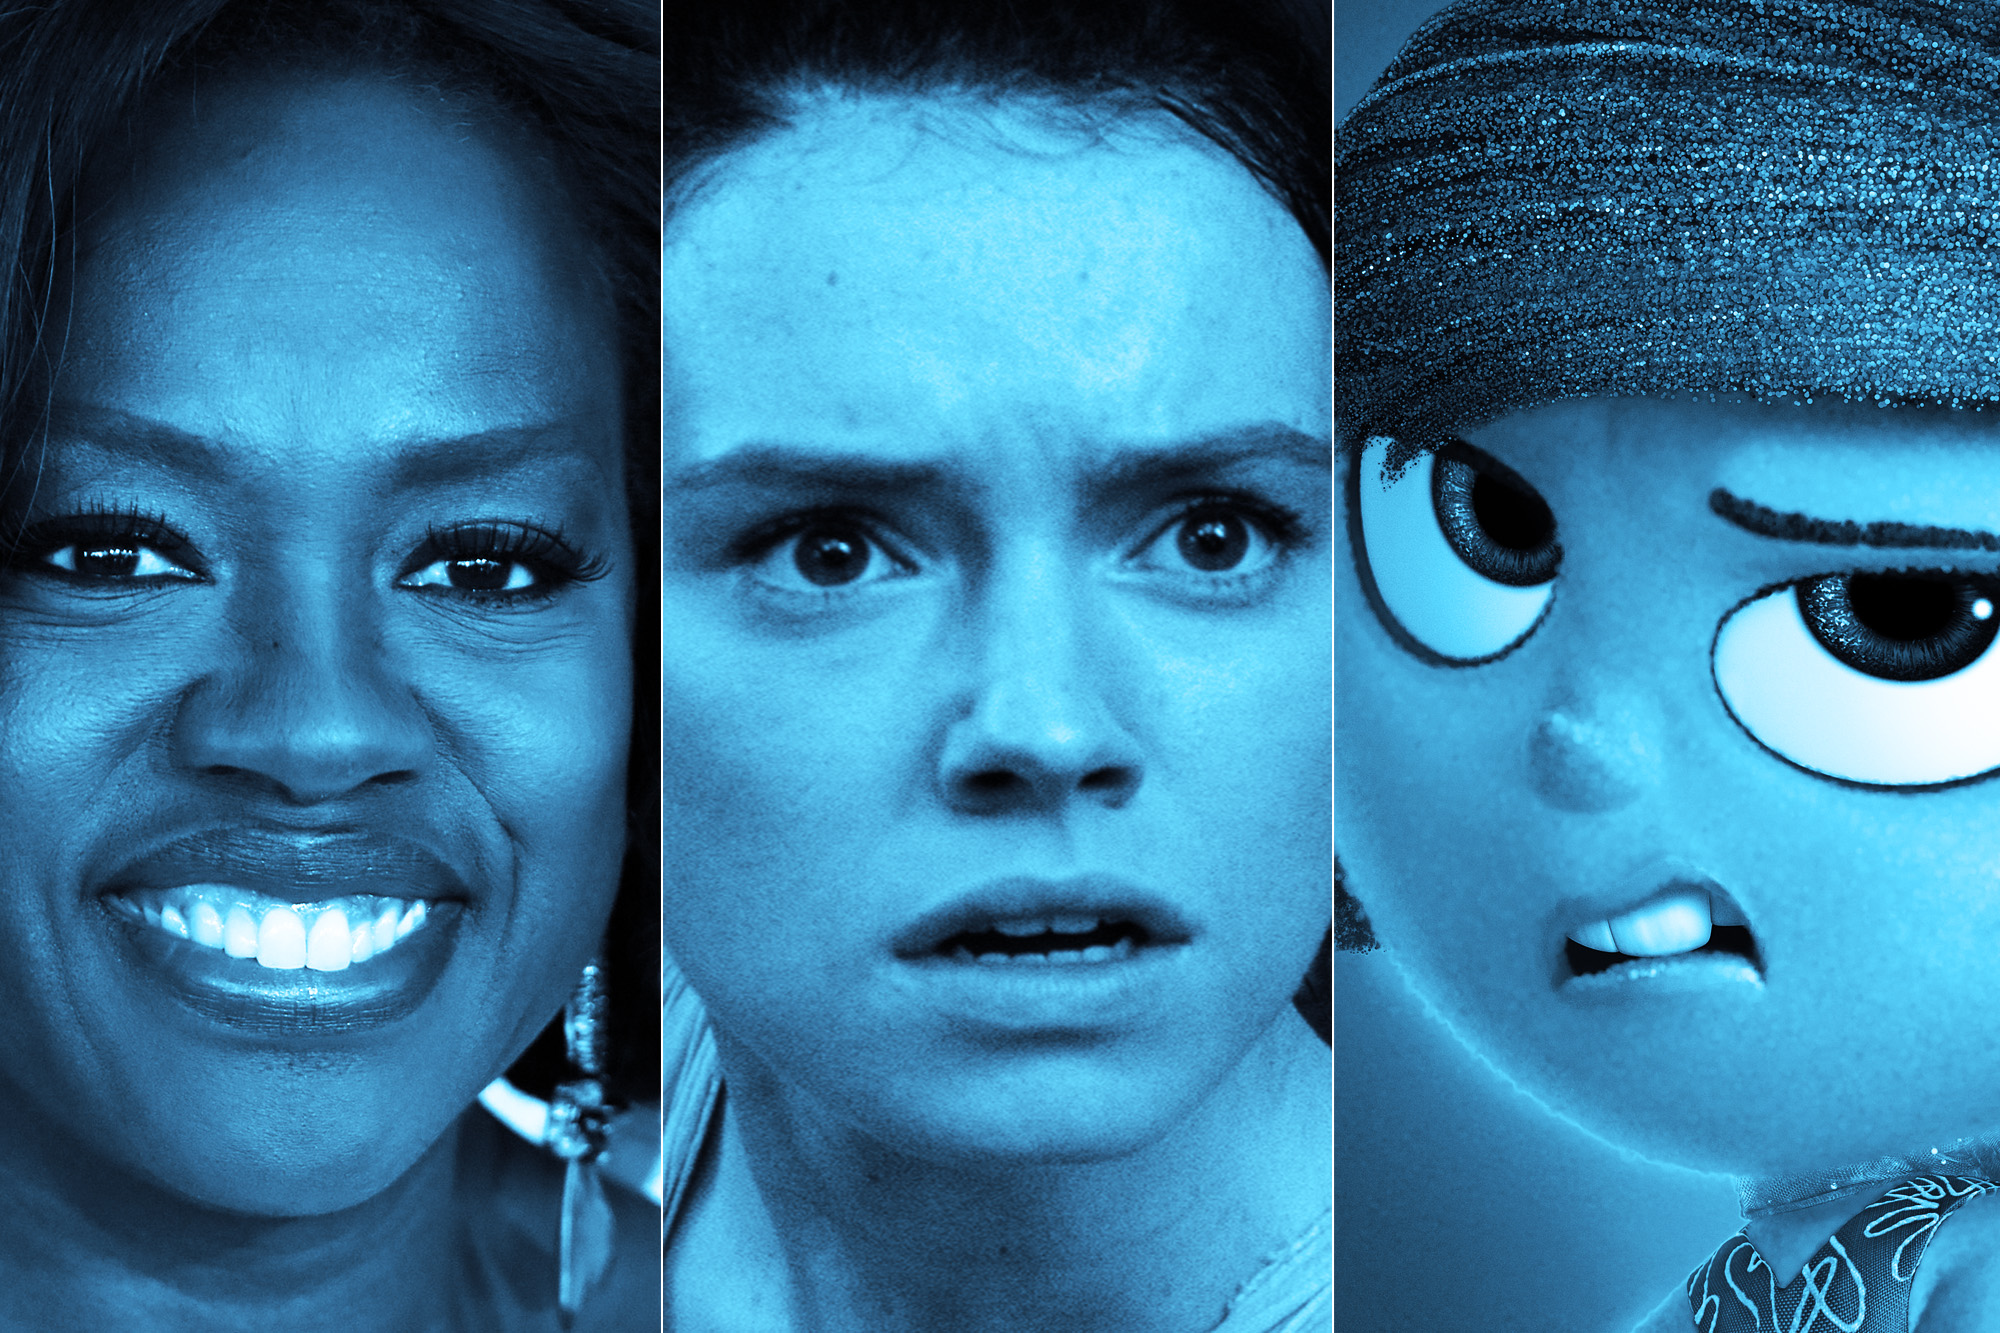 Viola Davis, Daisy Ridley as Rey in Star Wars: The Force Awakens, Disgust in Inside Out.